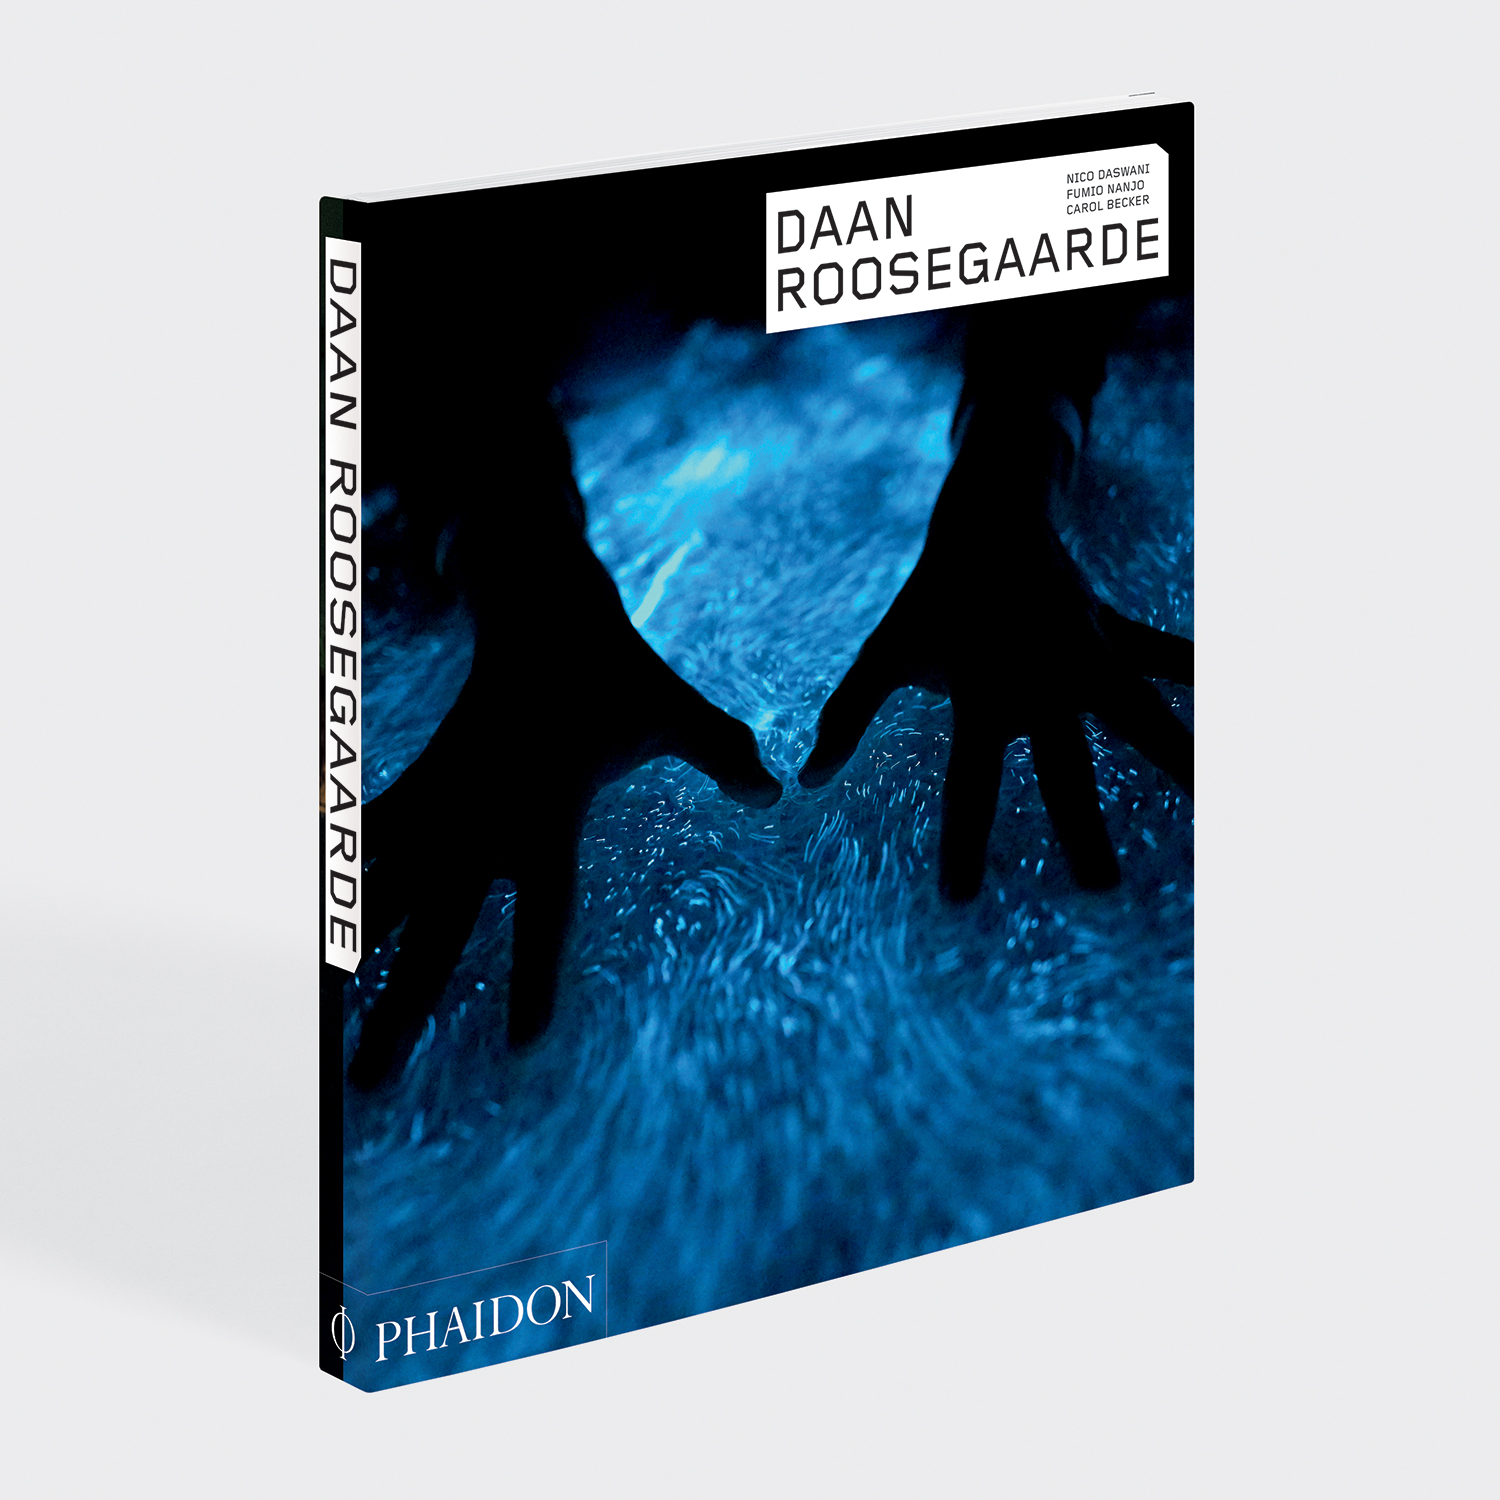 Our Daan Roosegaarde Contemporary Artist Series book